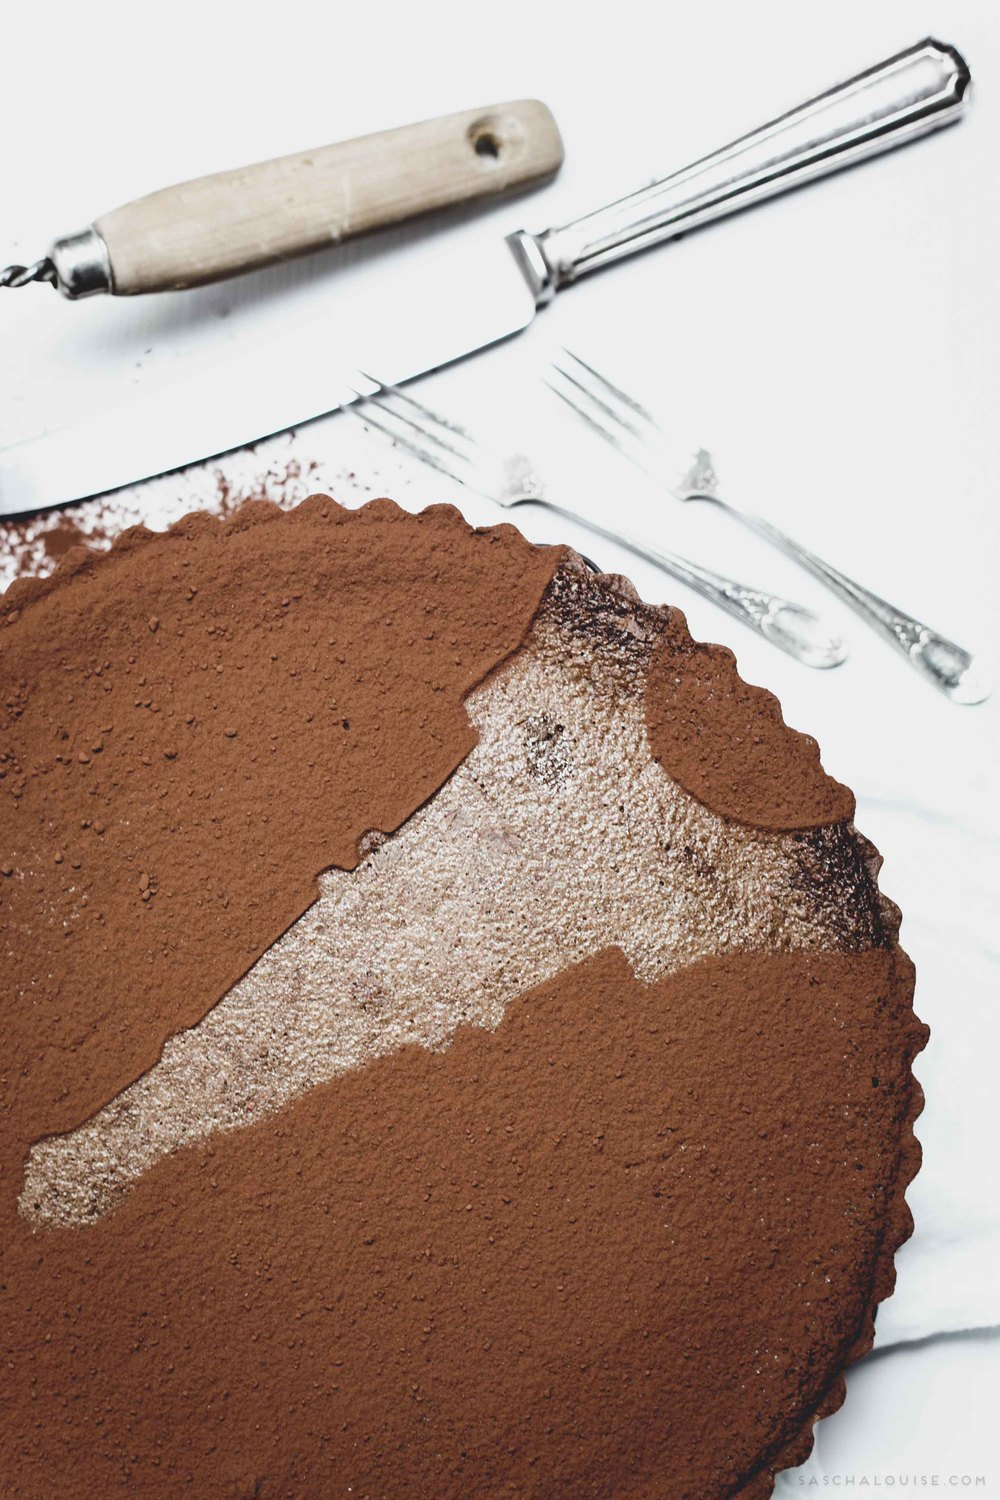 Use cookie cutters to make cocoa patterns